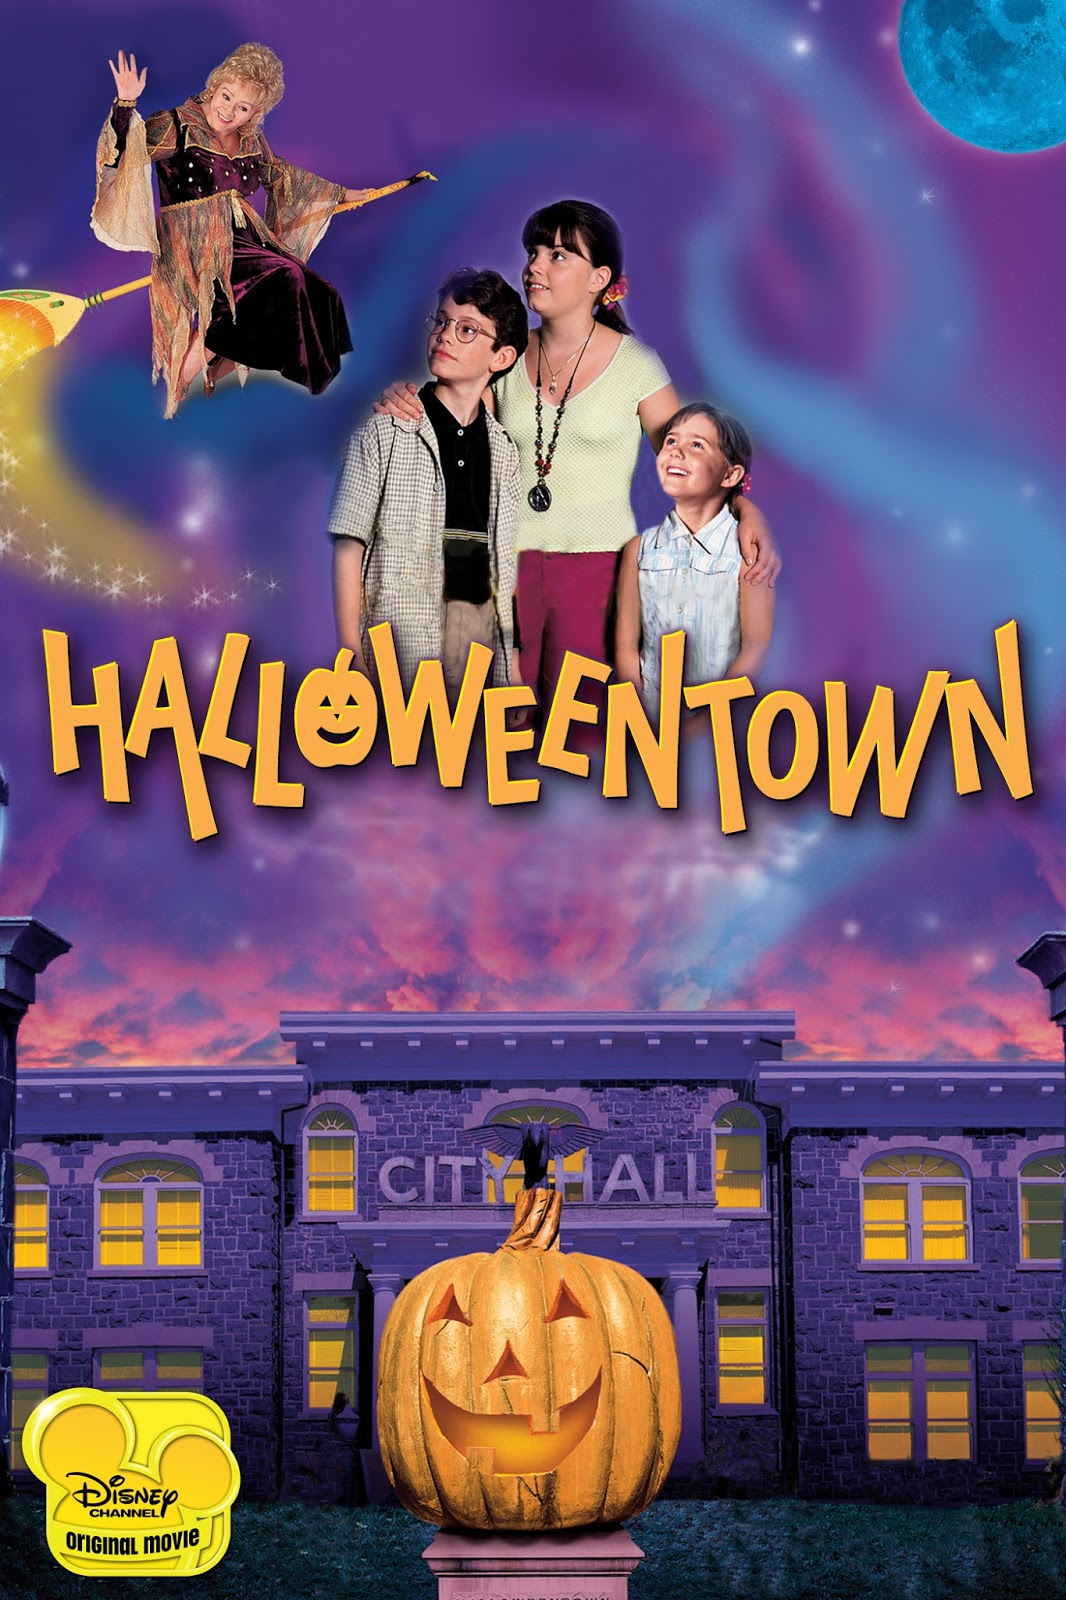 The Journeys of a Girl: My Favorite Disney Channel Halloween Movies